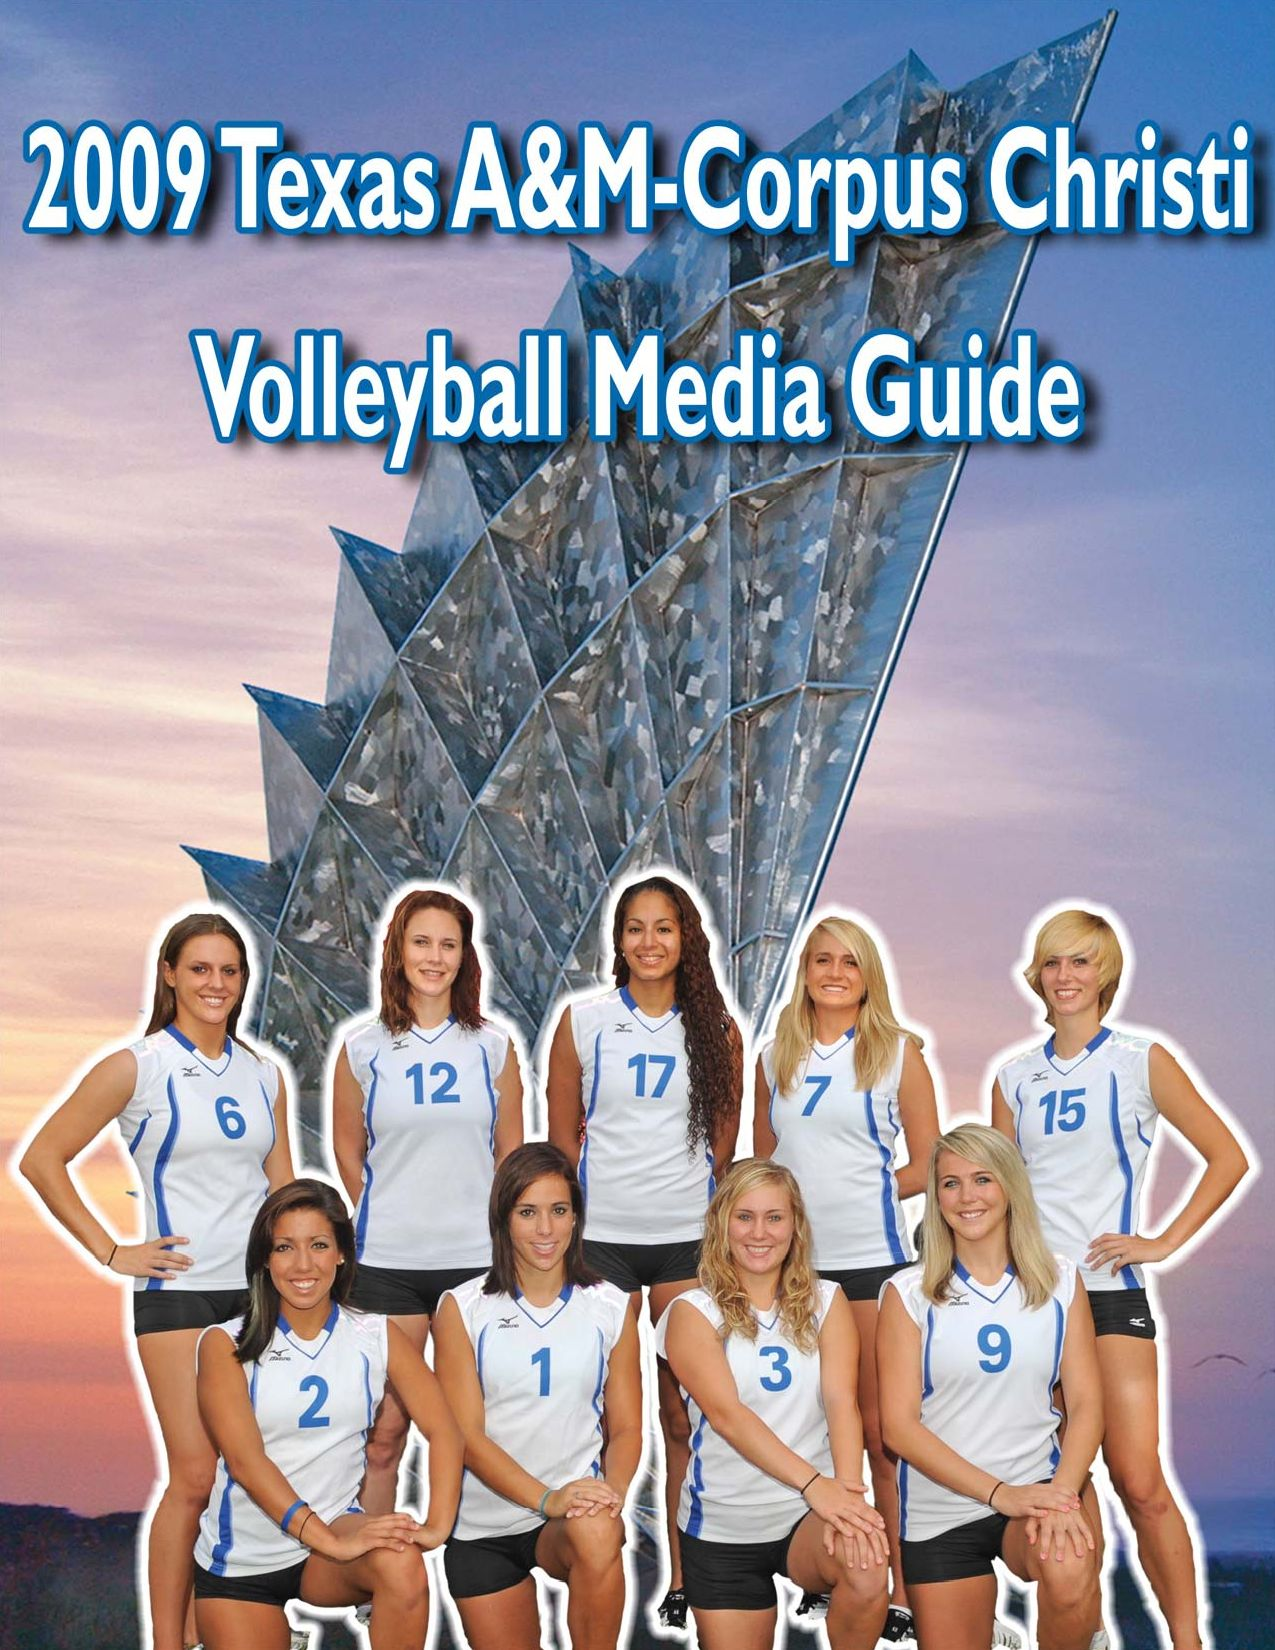 2009 Texas A&M Corpus Christi Volleyball Media Guide by Texas A&M